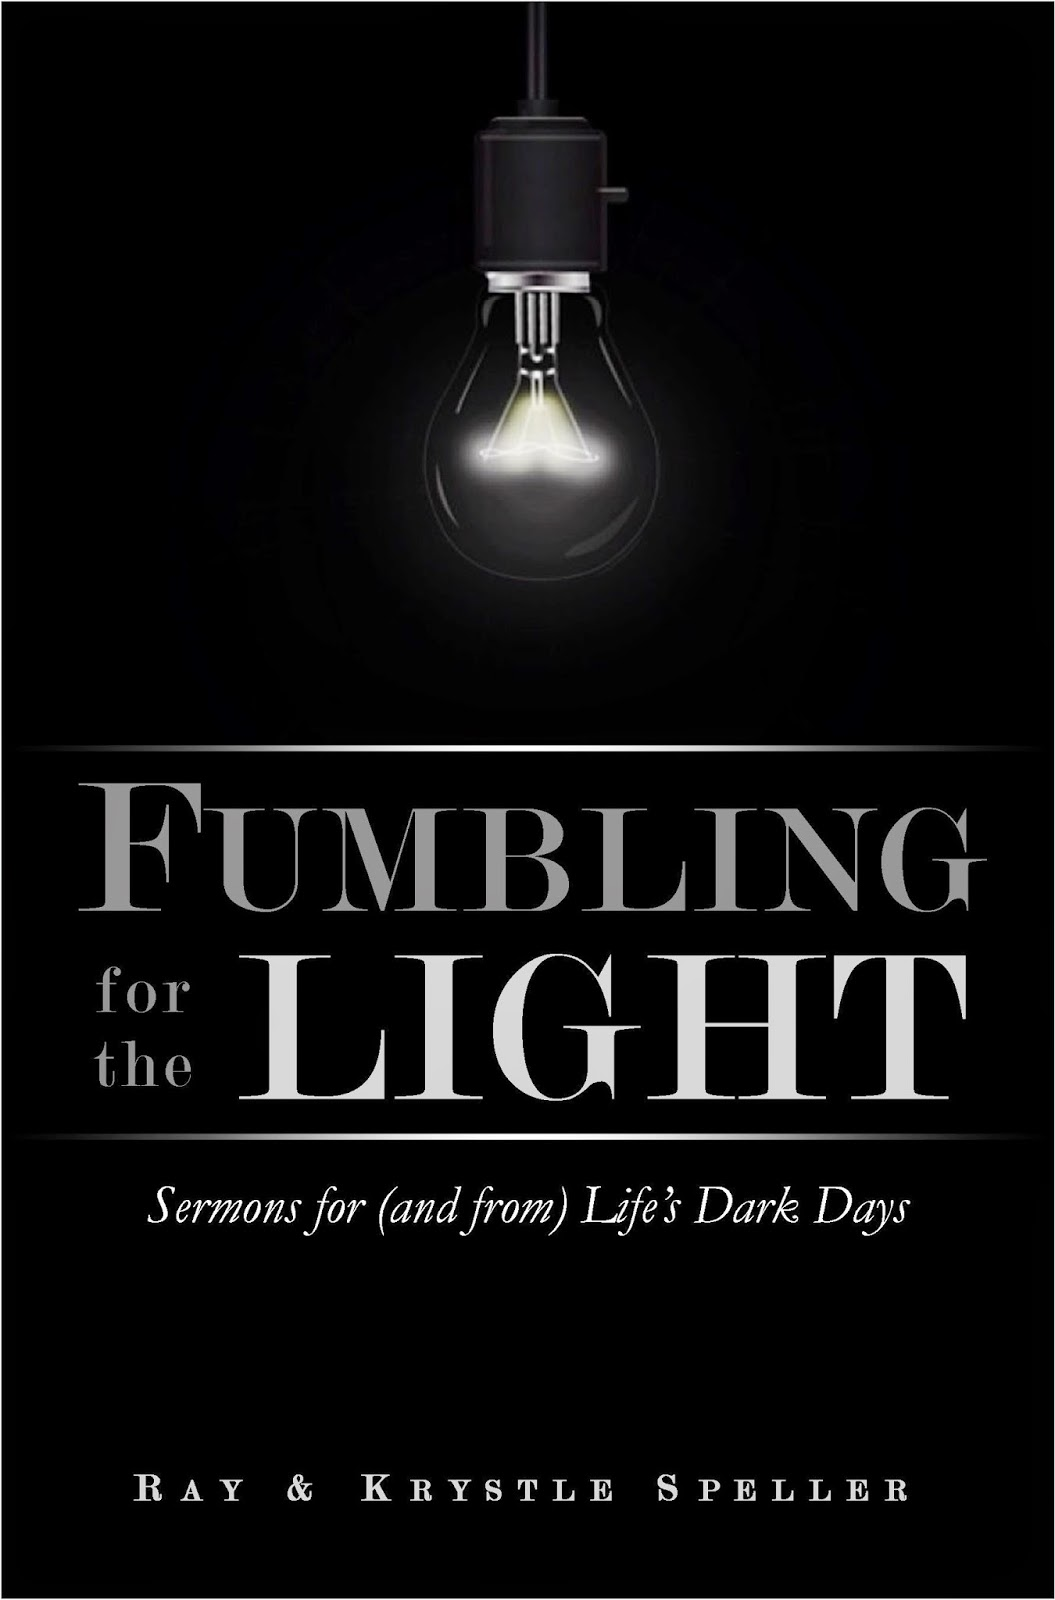 Fumbling for the Light Cover